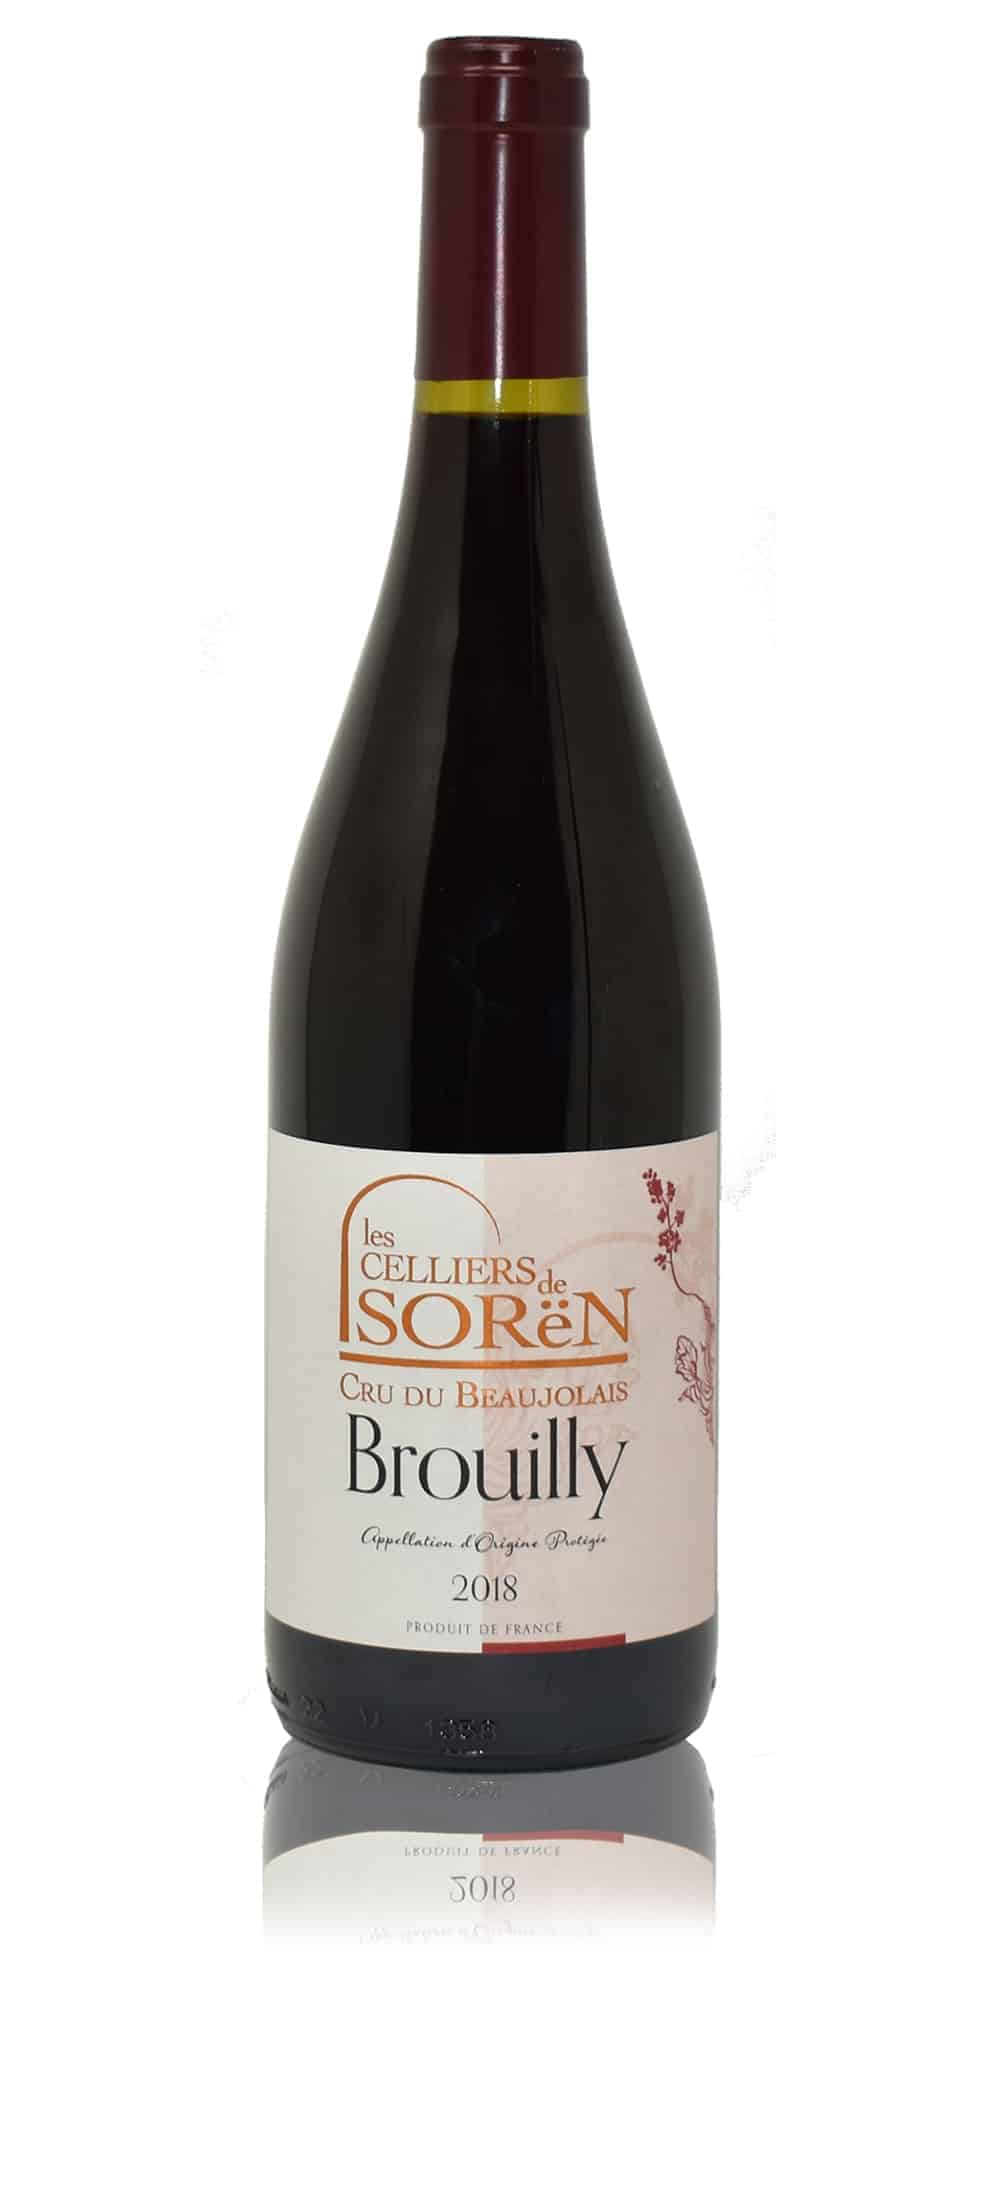 A bottle of Les Celliers de Sorën Brouilly from Beaujolais